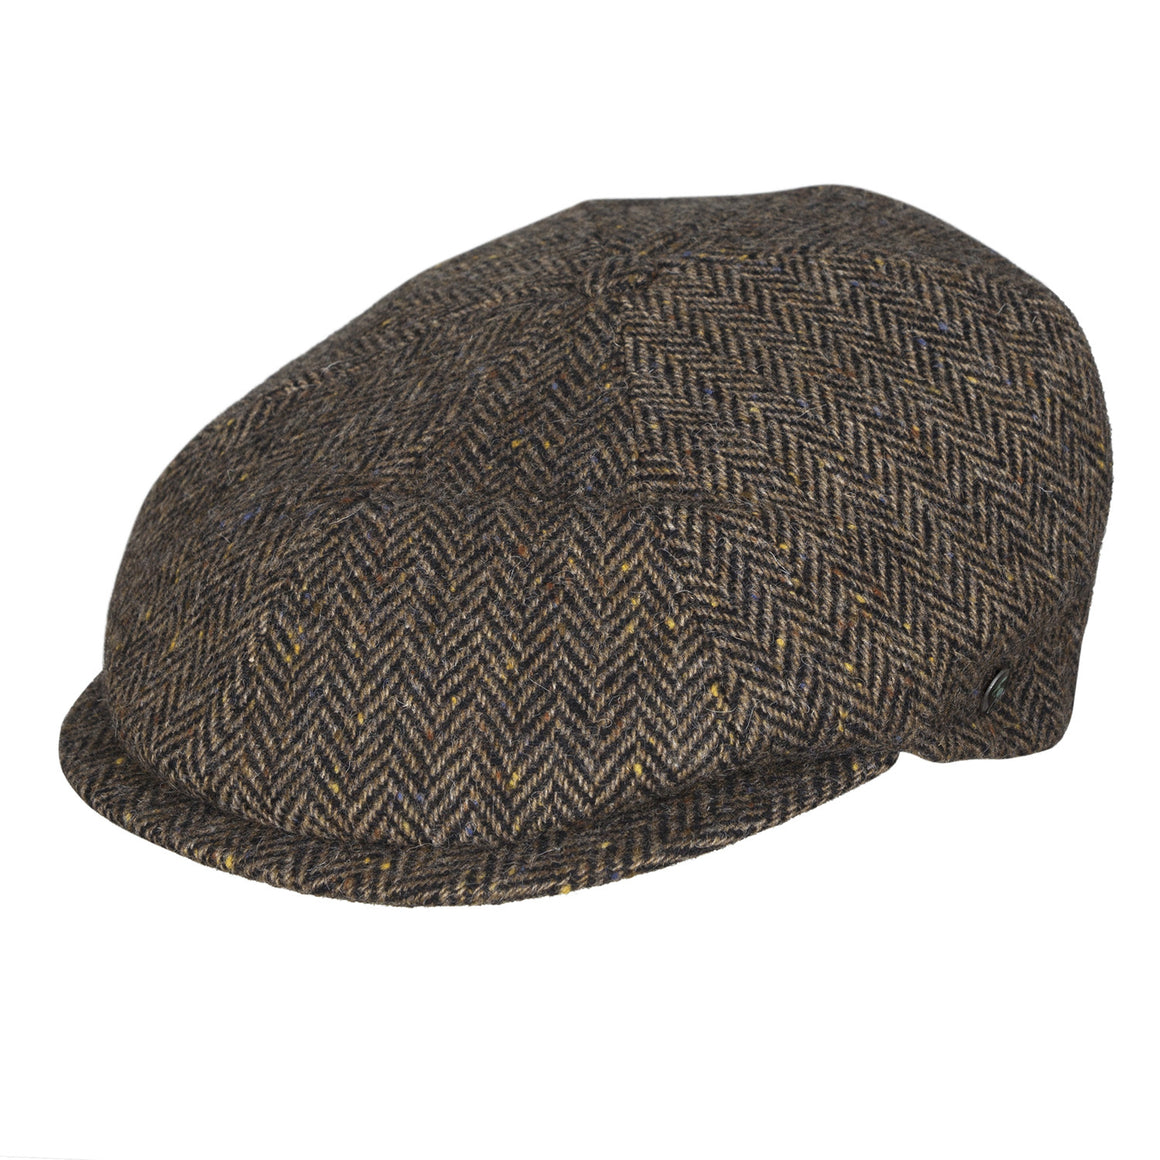 b0baa6f9d Mens Caps and Hats - The Cashmere Choice